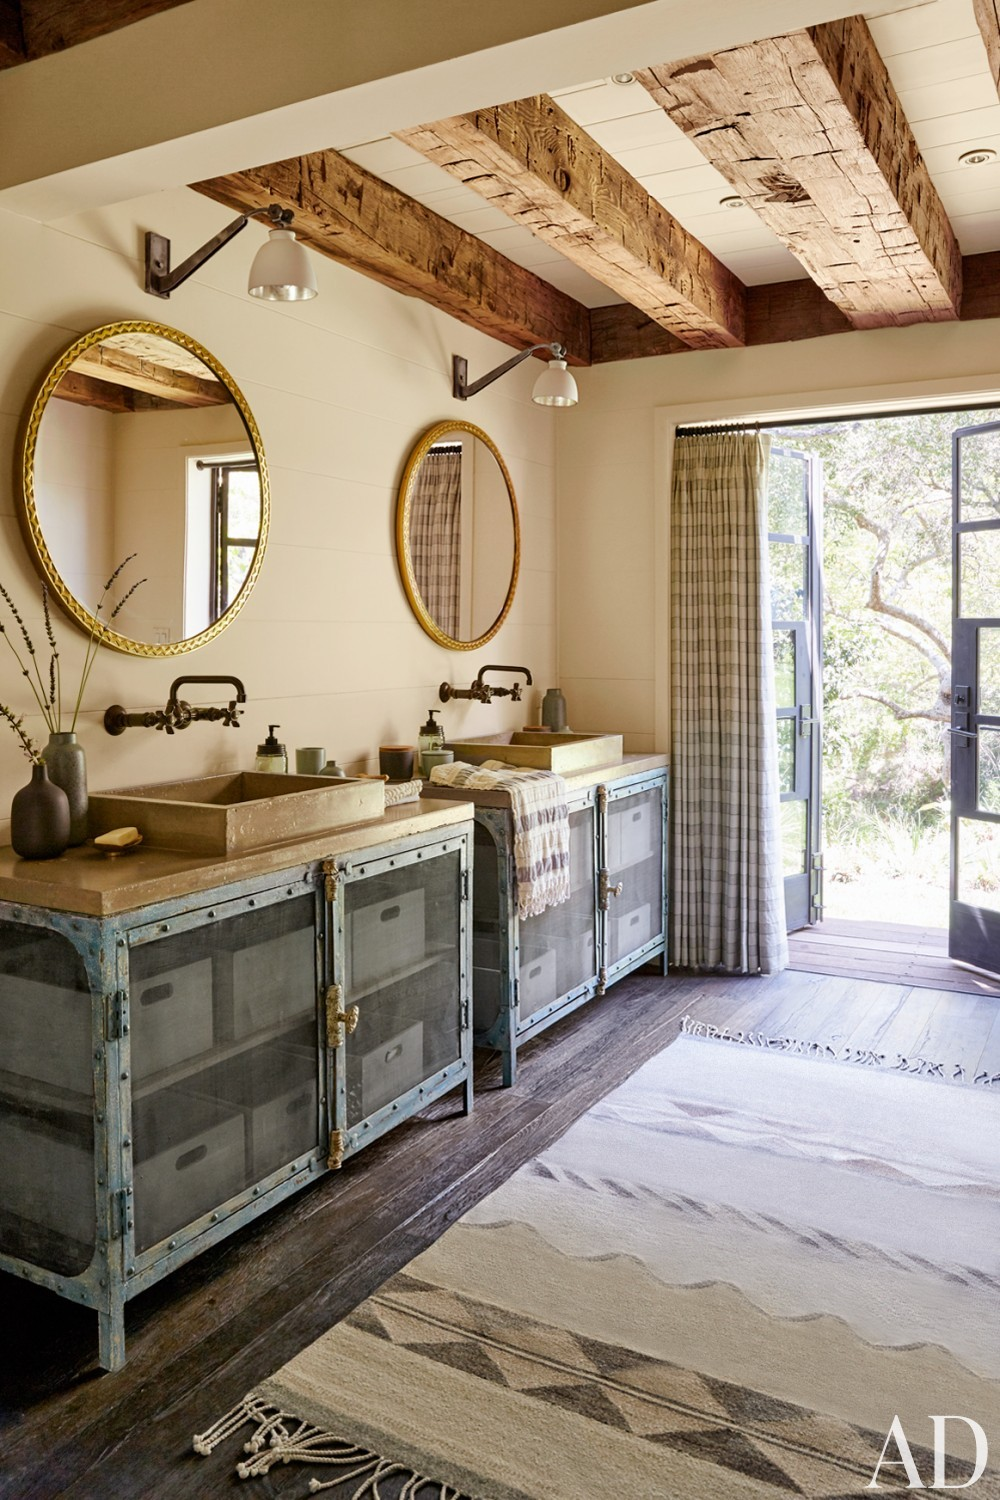 Bathroom by Hammer and Spear and Hammer and Spear in Los Angeles, CA